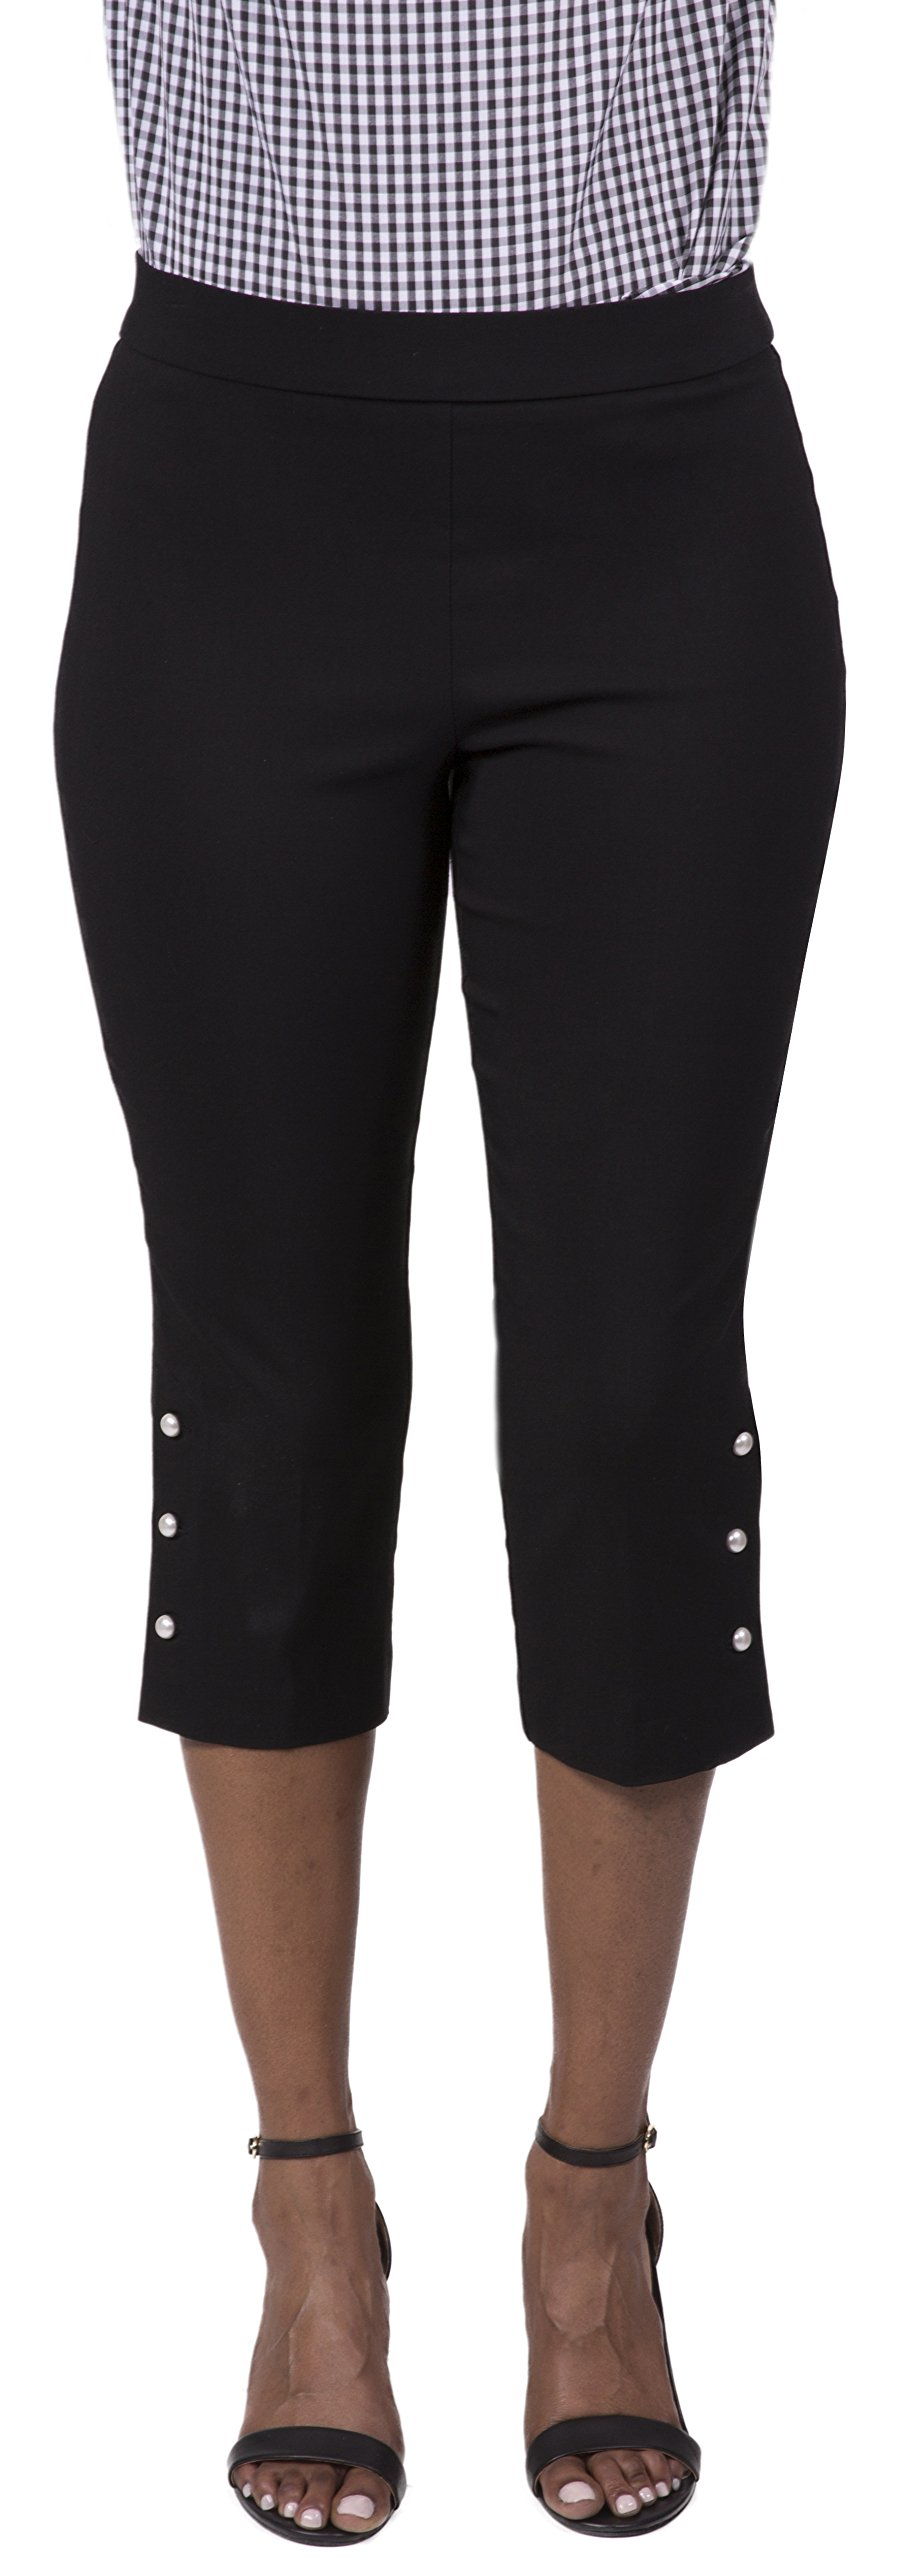 Fundamental Things Women's Easy Pull-On Crop Pant with Button Detail and Slimming Sensations Fabric, Black, Size 8